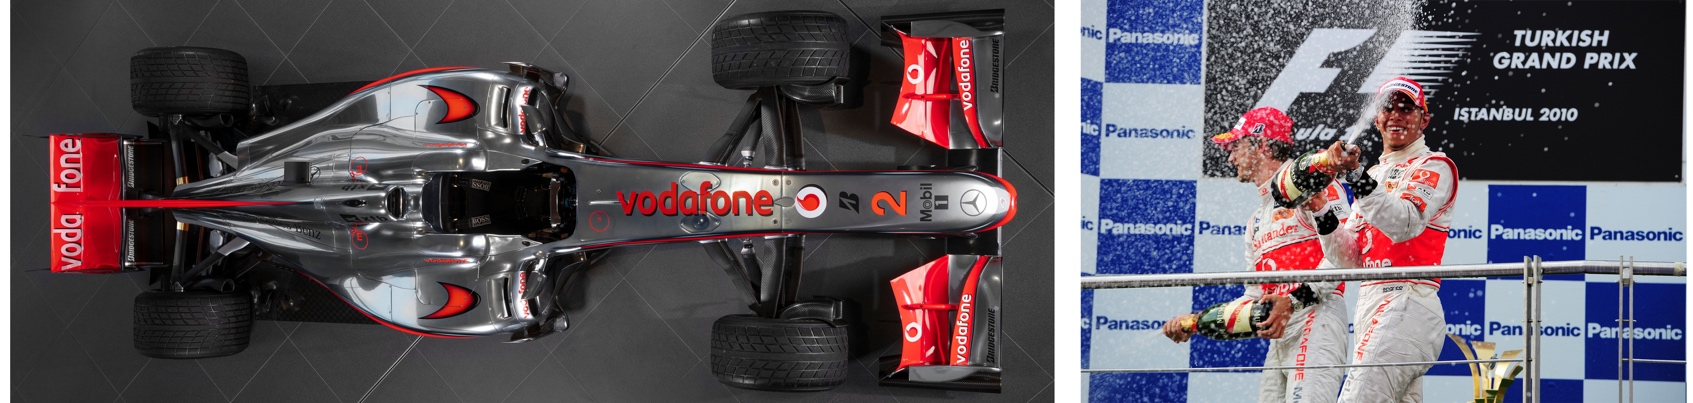 First Ever Lewis Hamilton Formula 1® Race Winning car to be Auctioned Live by RM Sotheby's 1